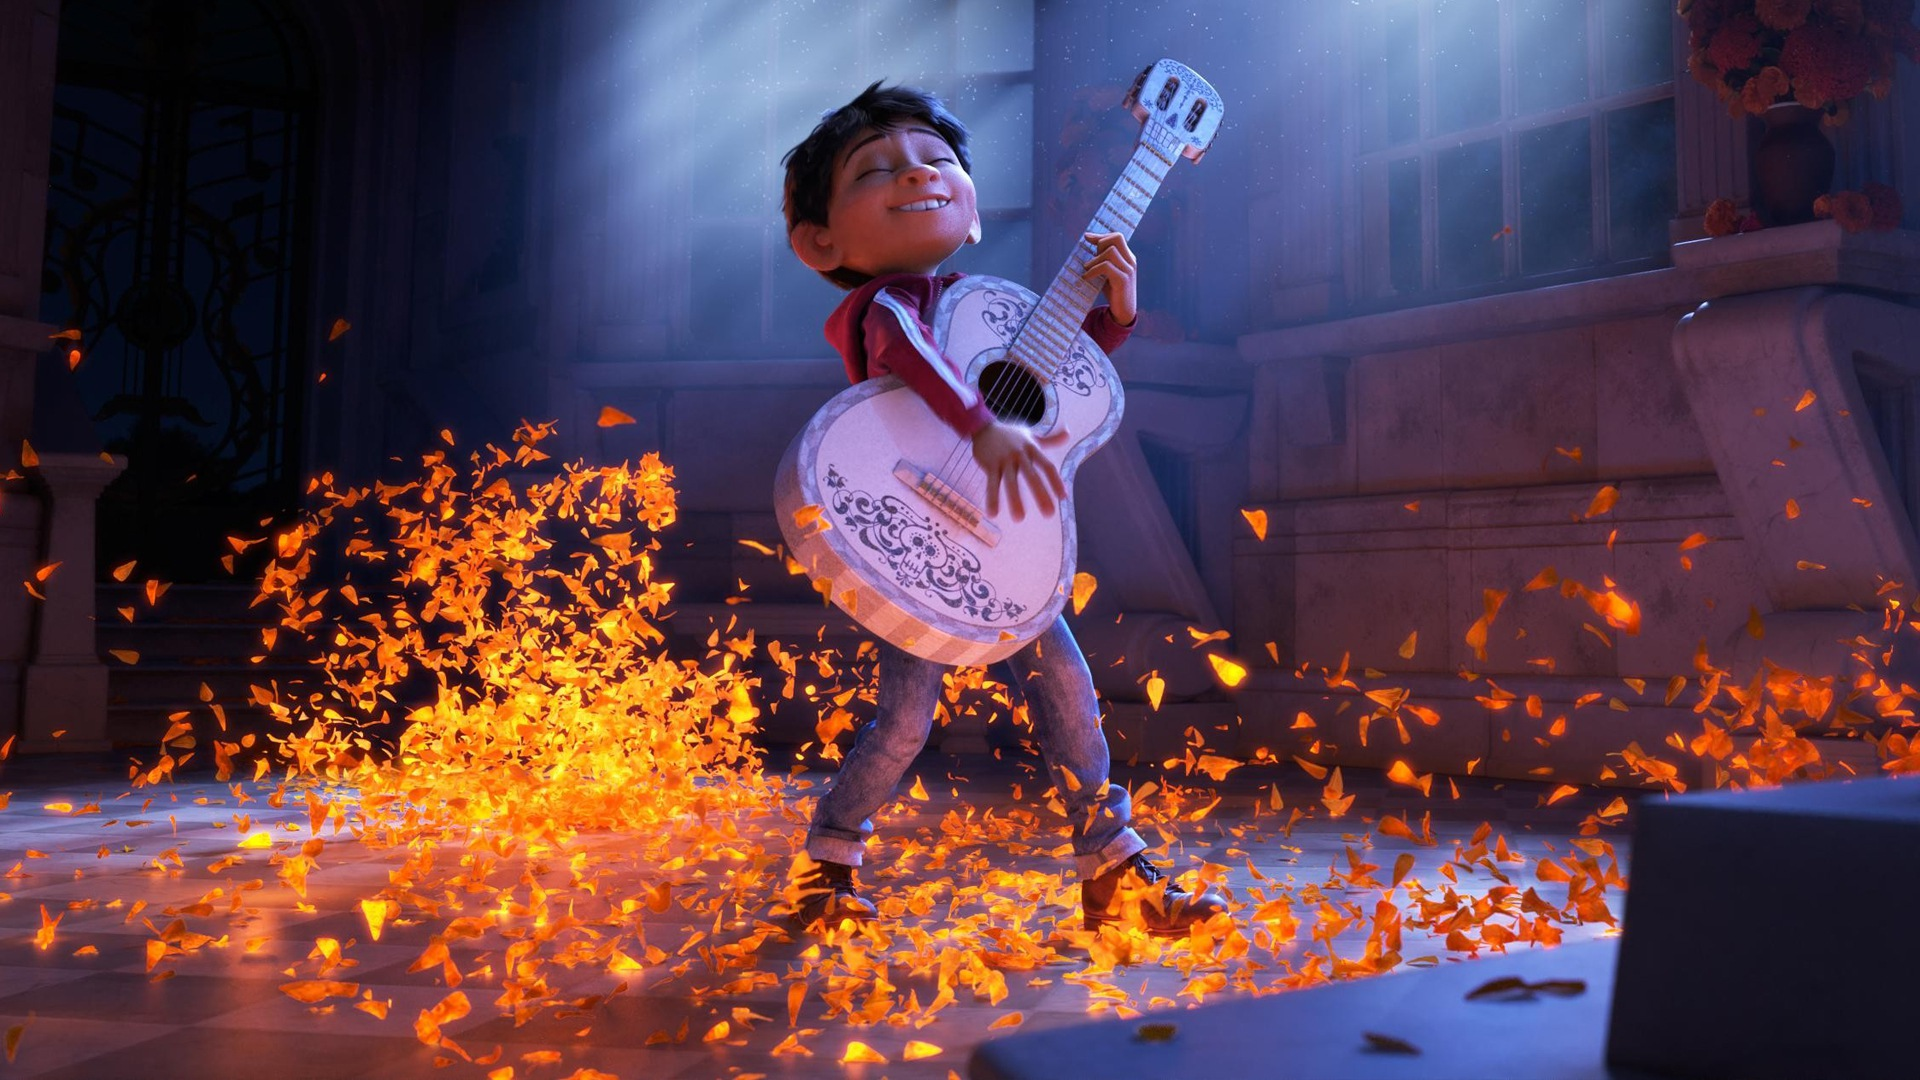 coco movie wallpaper